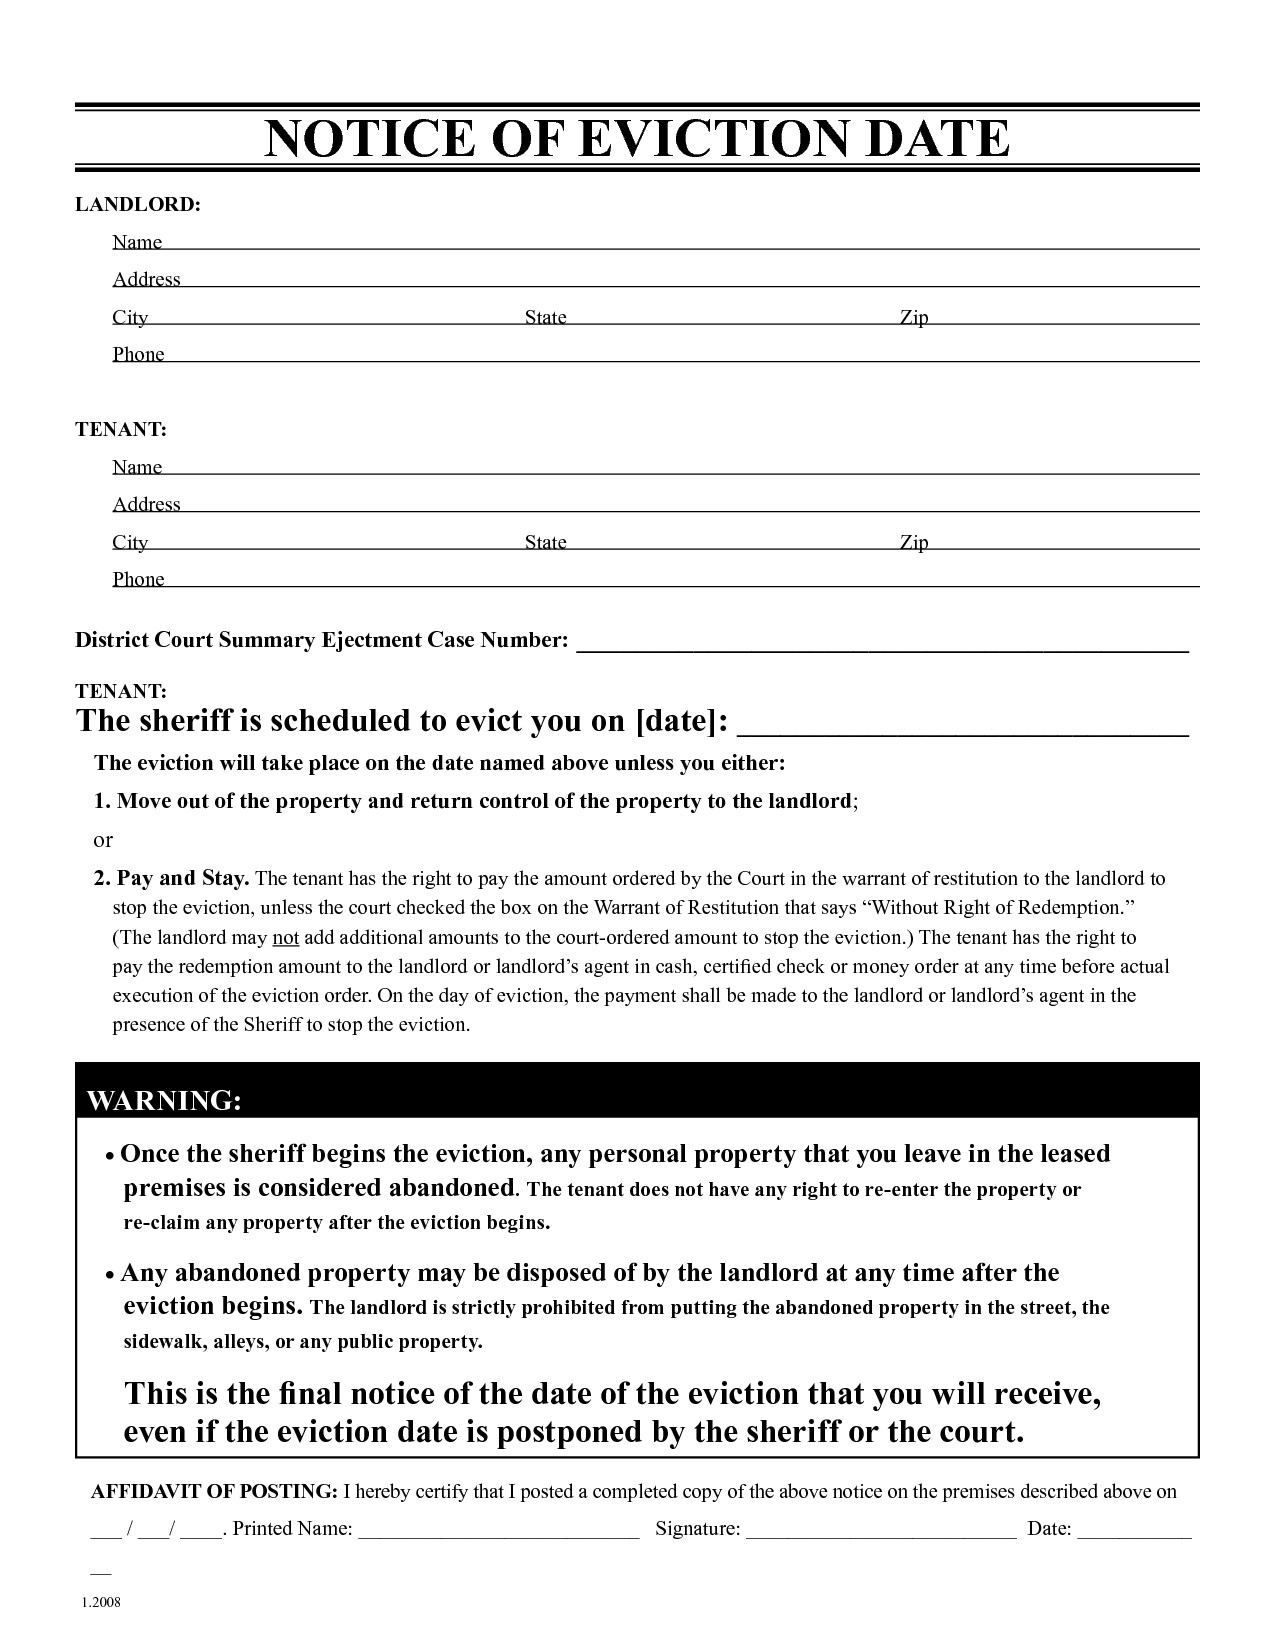 Eviction Letter Template Free - Free Eviction Notice form Best Notice Meeting Template Beautiful